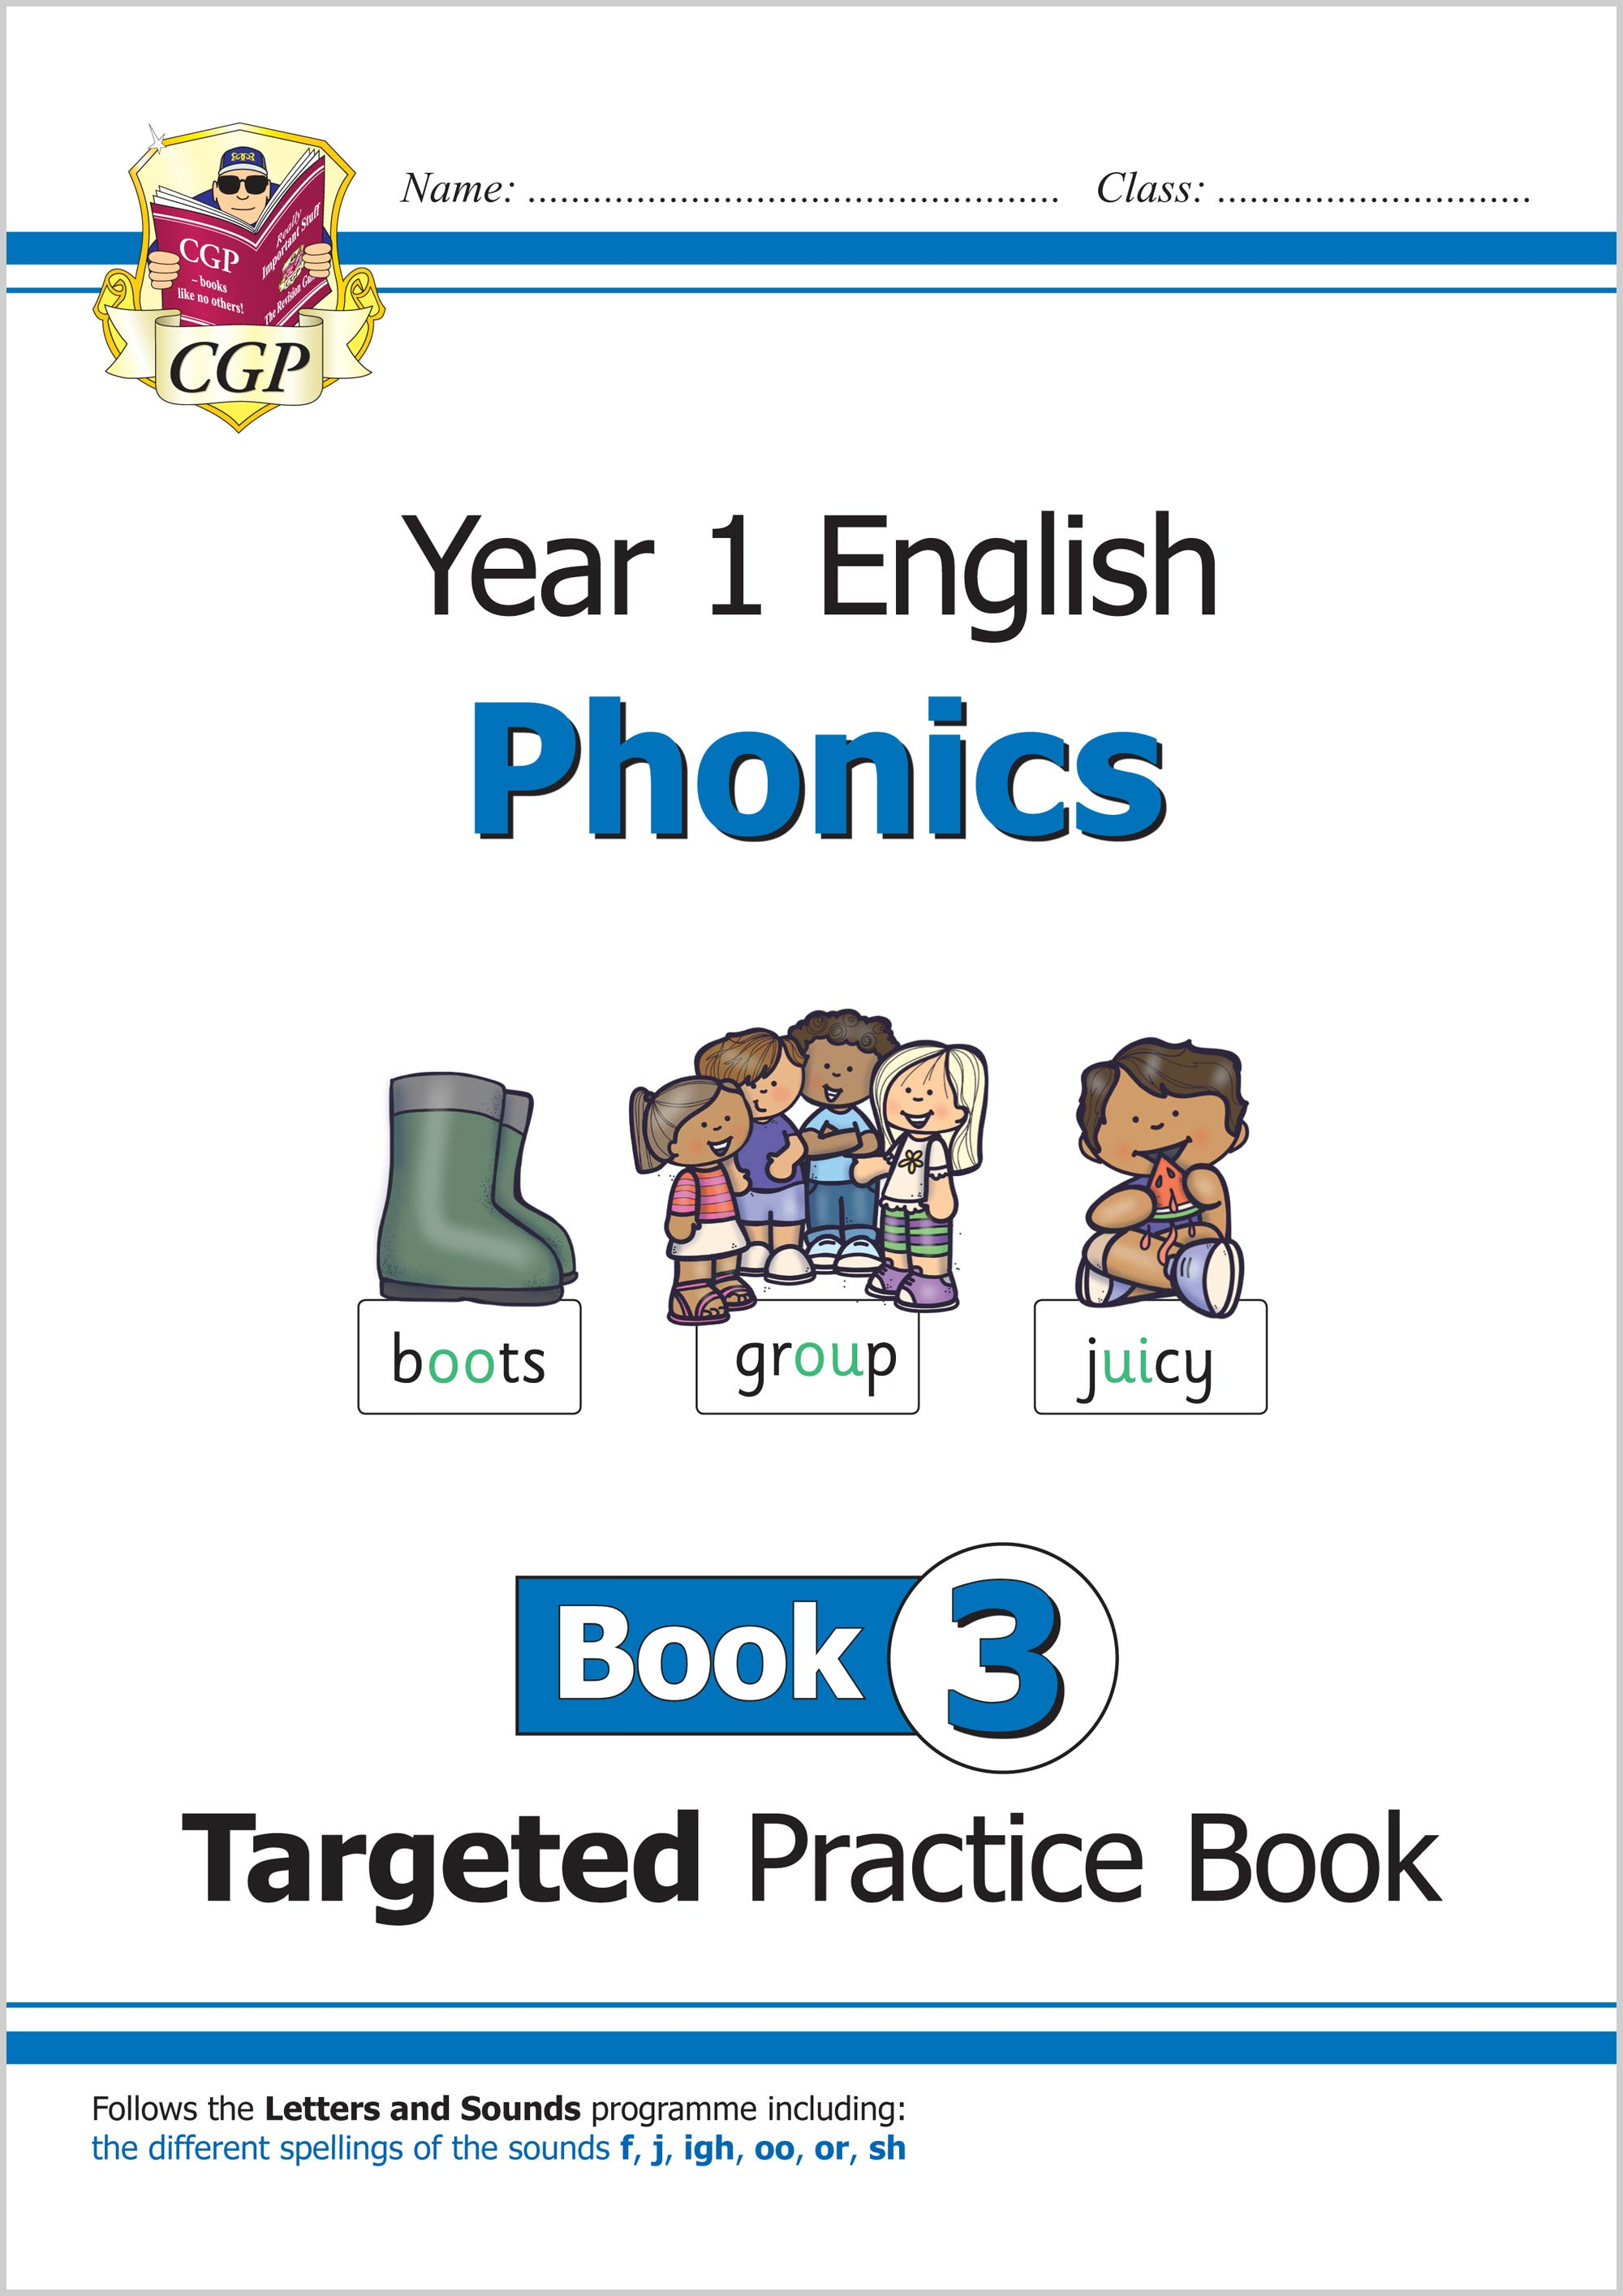 E1OW311 - New KS1 English Targeted Practice Book: Phonics - Year 1 Book 3